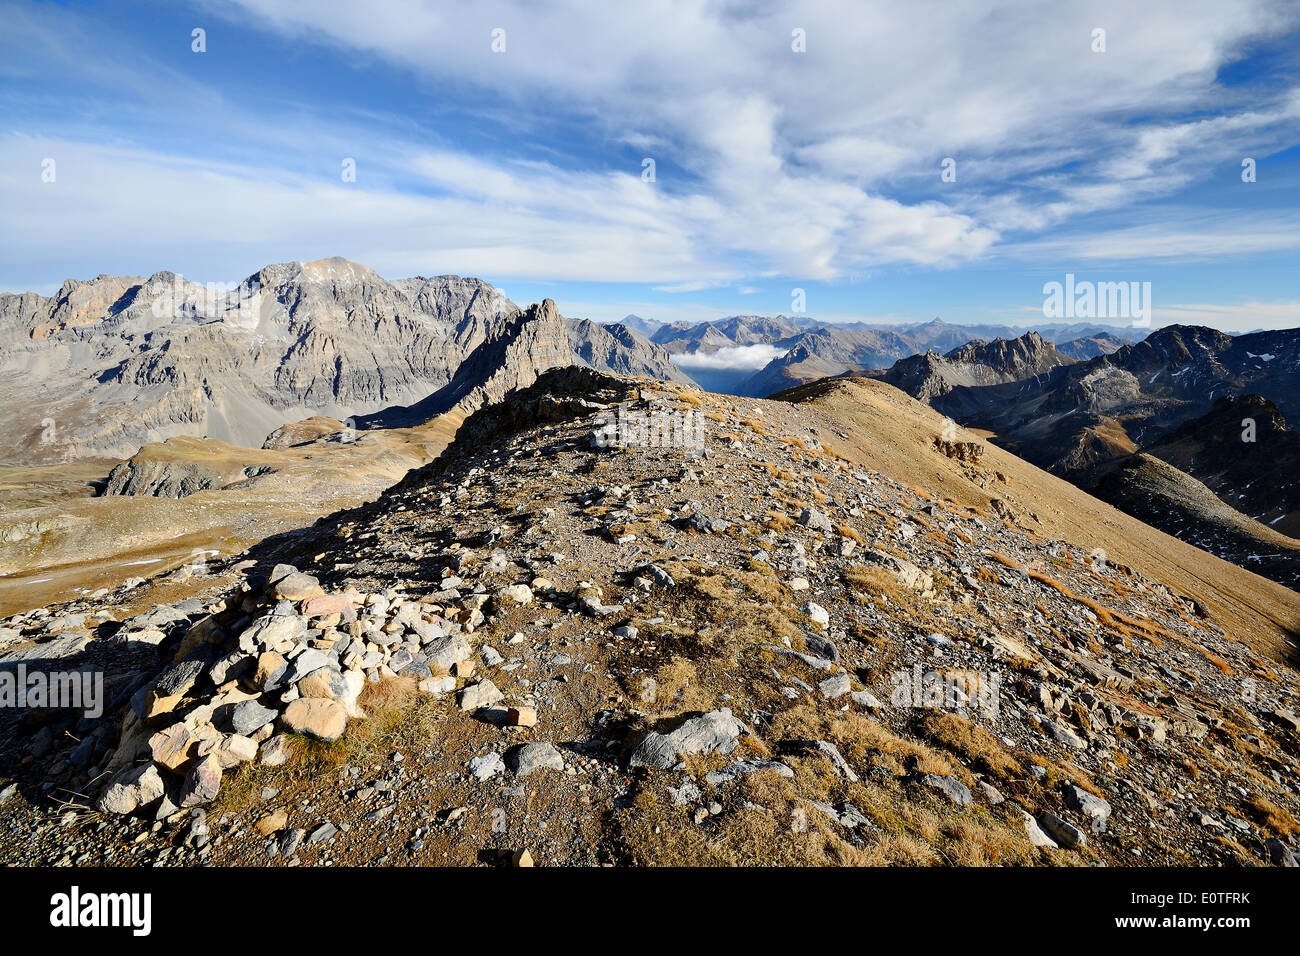 Mountain footpath leading up to the top of M. Thabor (3178 m) in afternoon light on barren terrain. Stock Photo